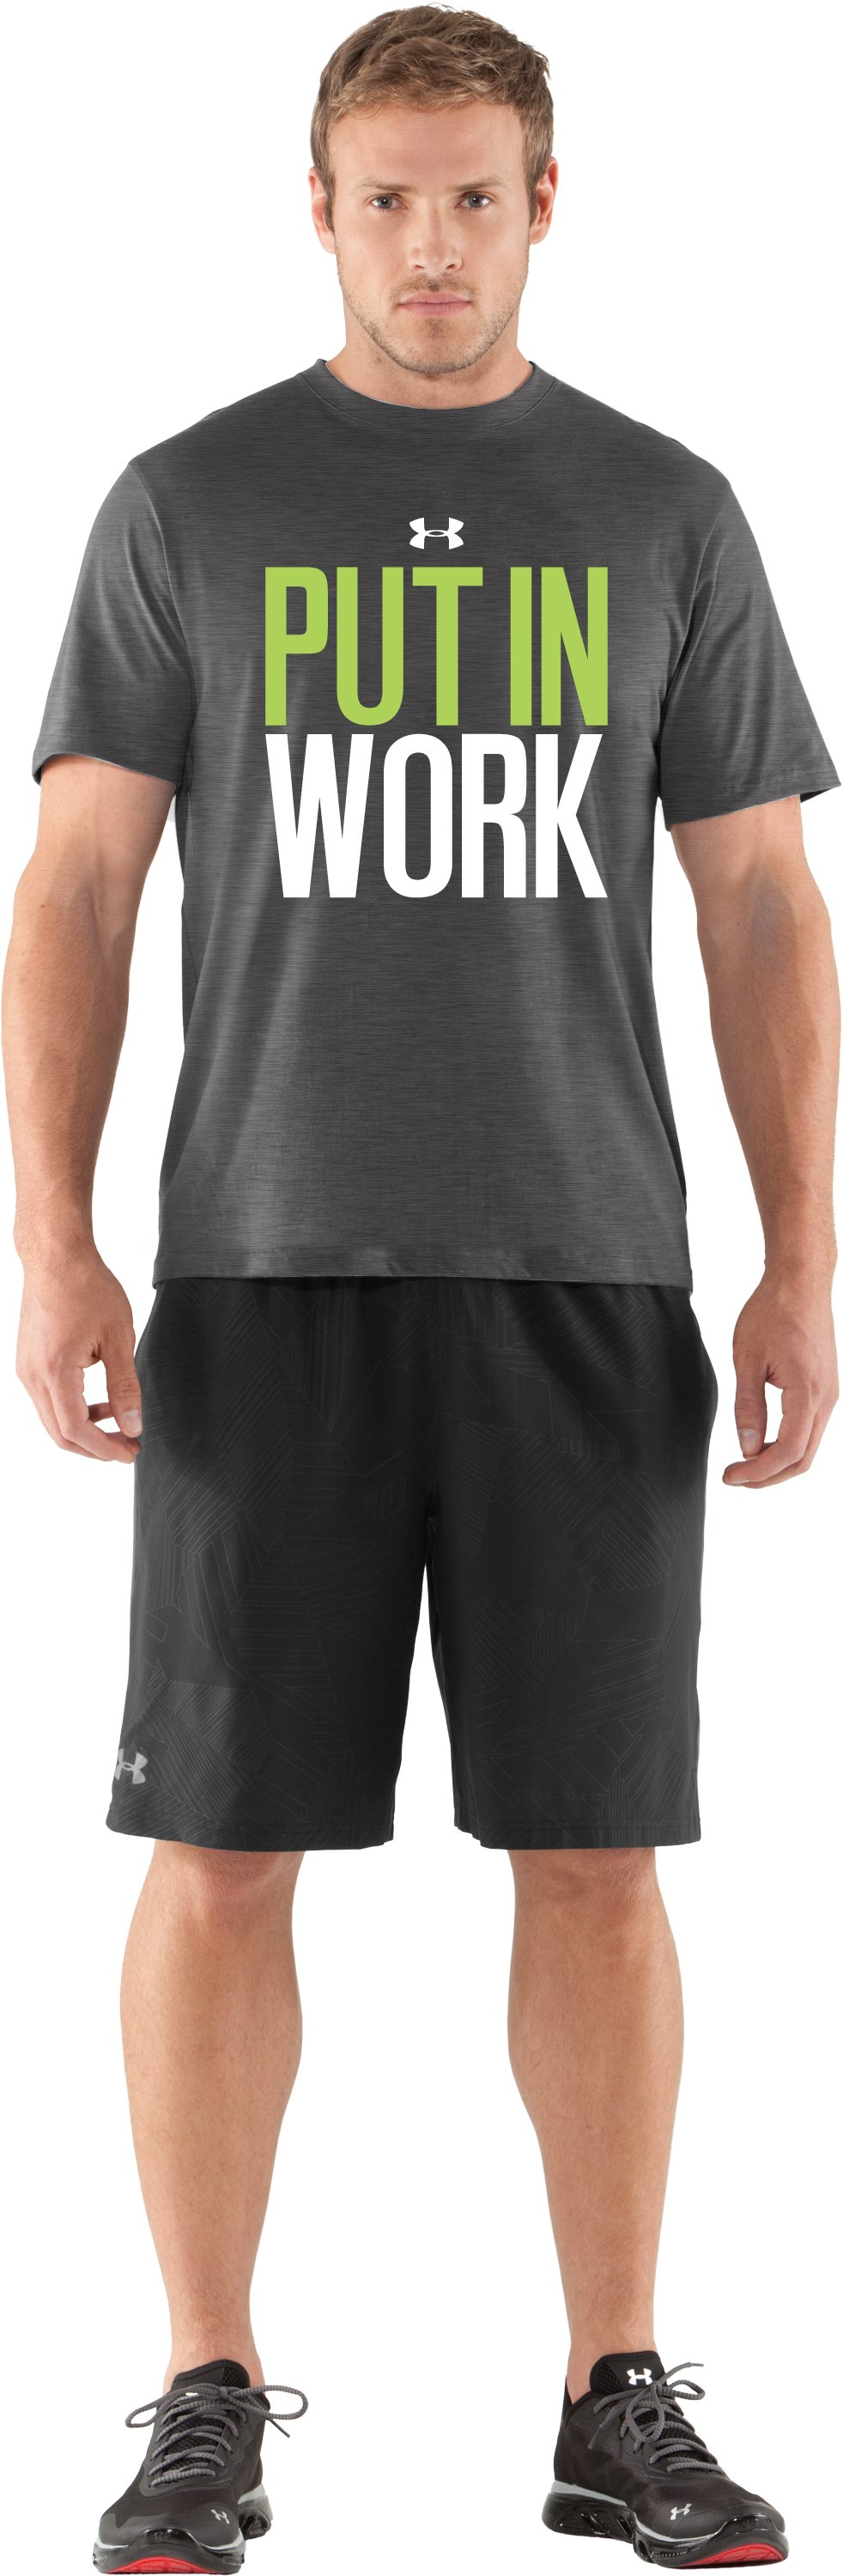 Men's UA Put In Work T-Shirt, Carbon Heather